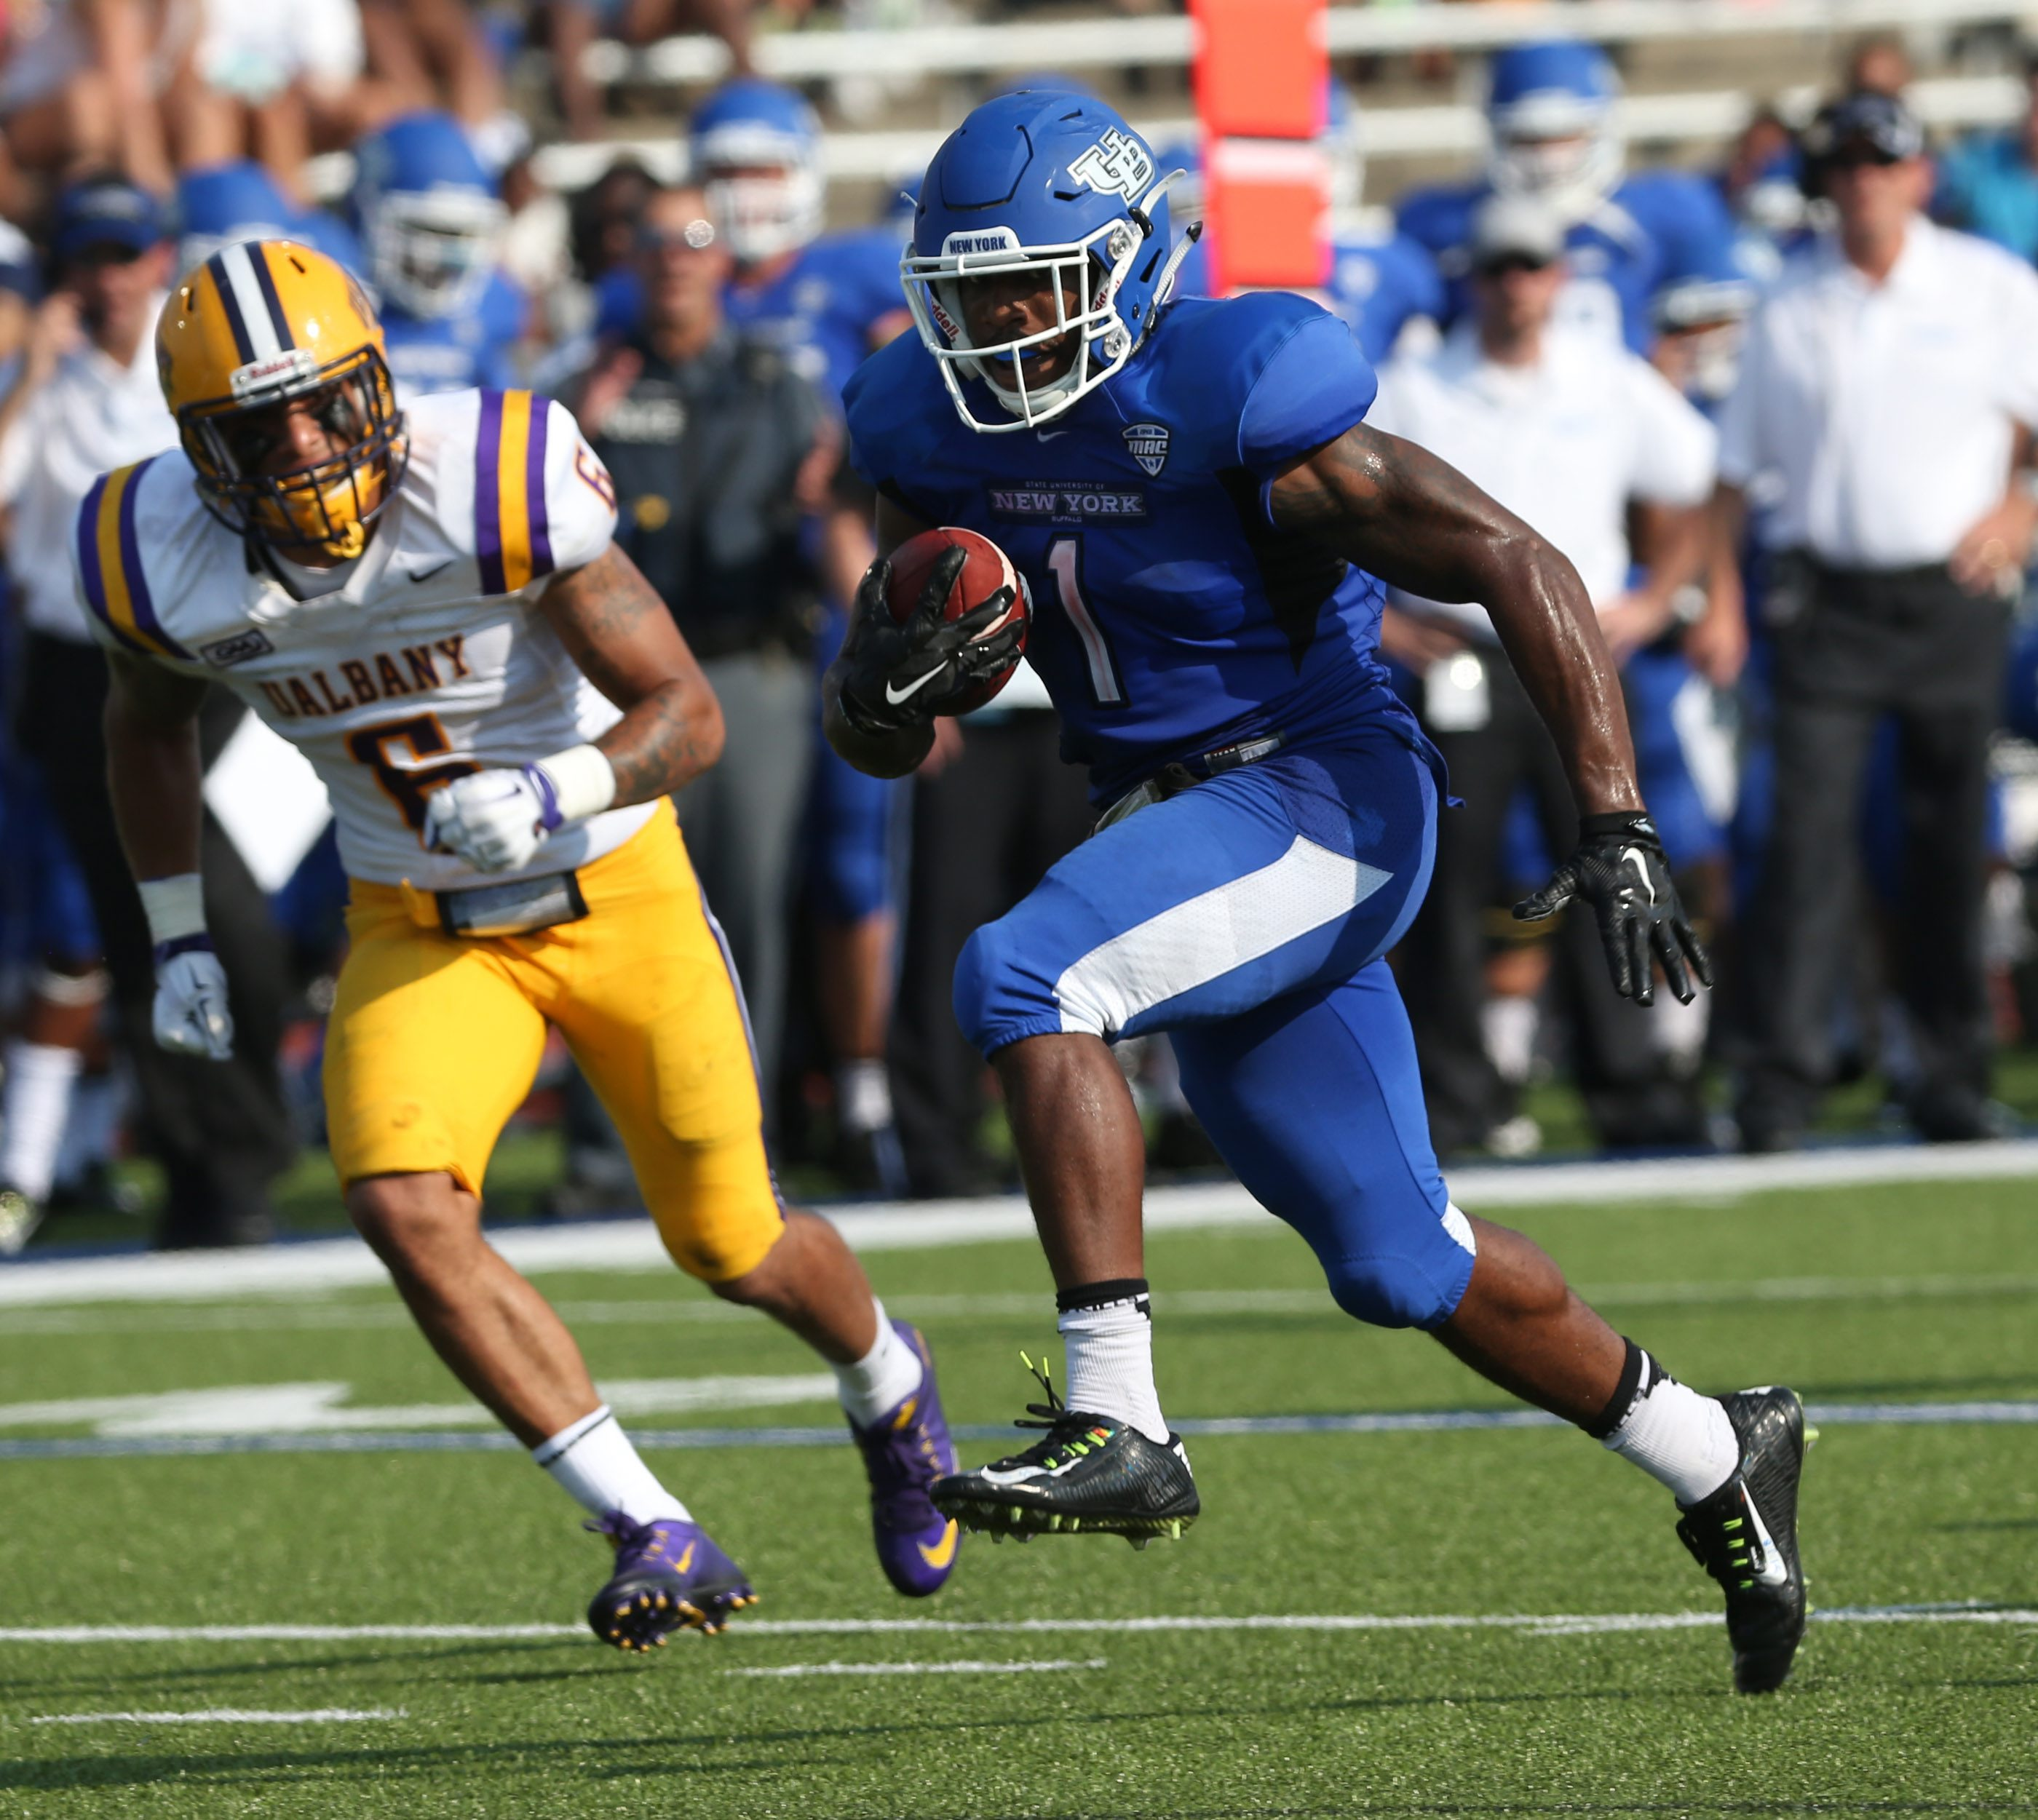 UB is aiming for another big win over Albany in its season opener. (James P. McCoy/ Buffalo News)